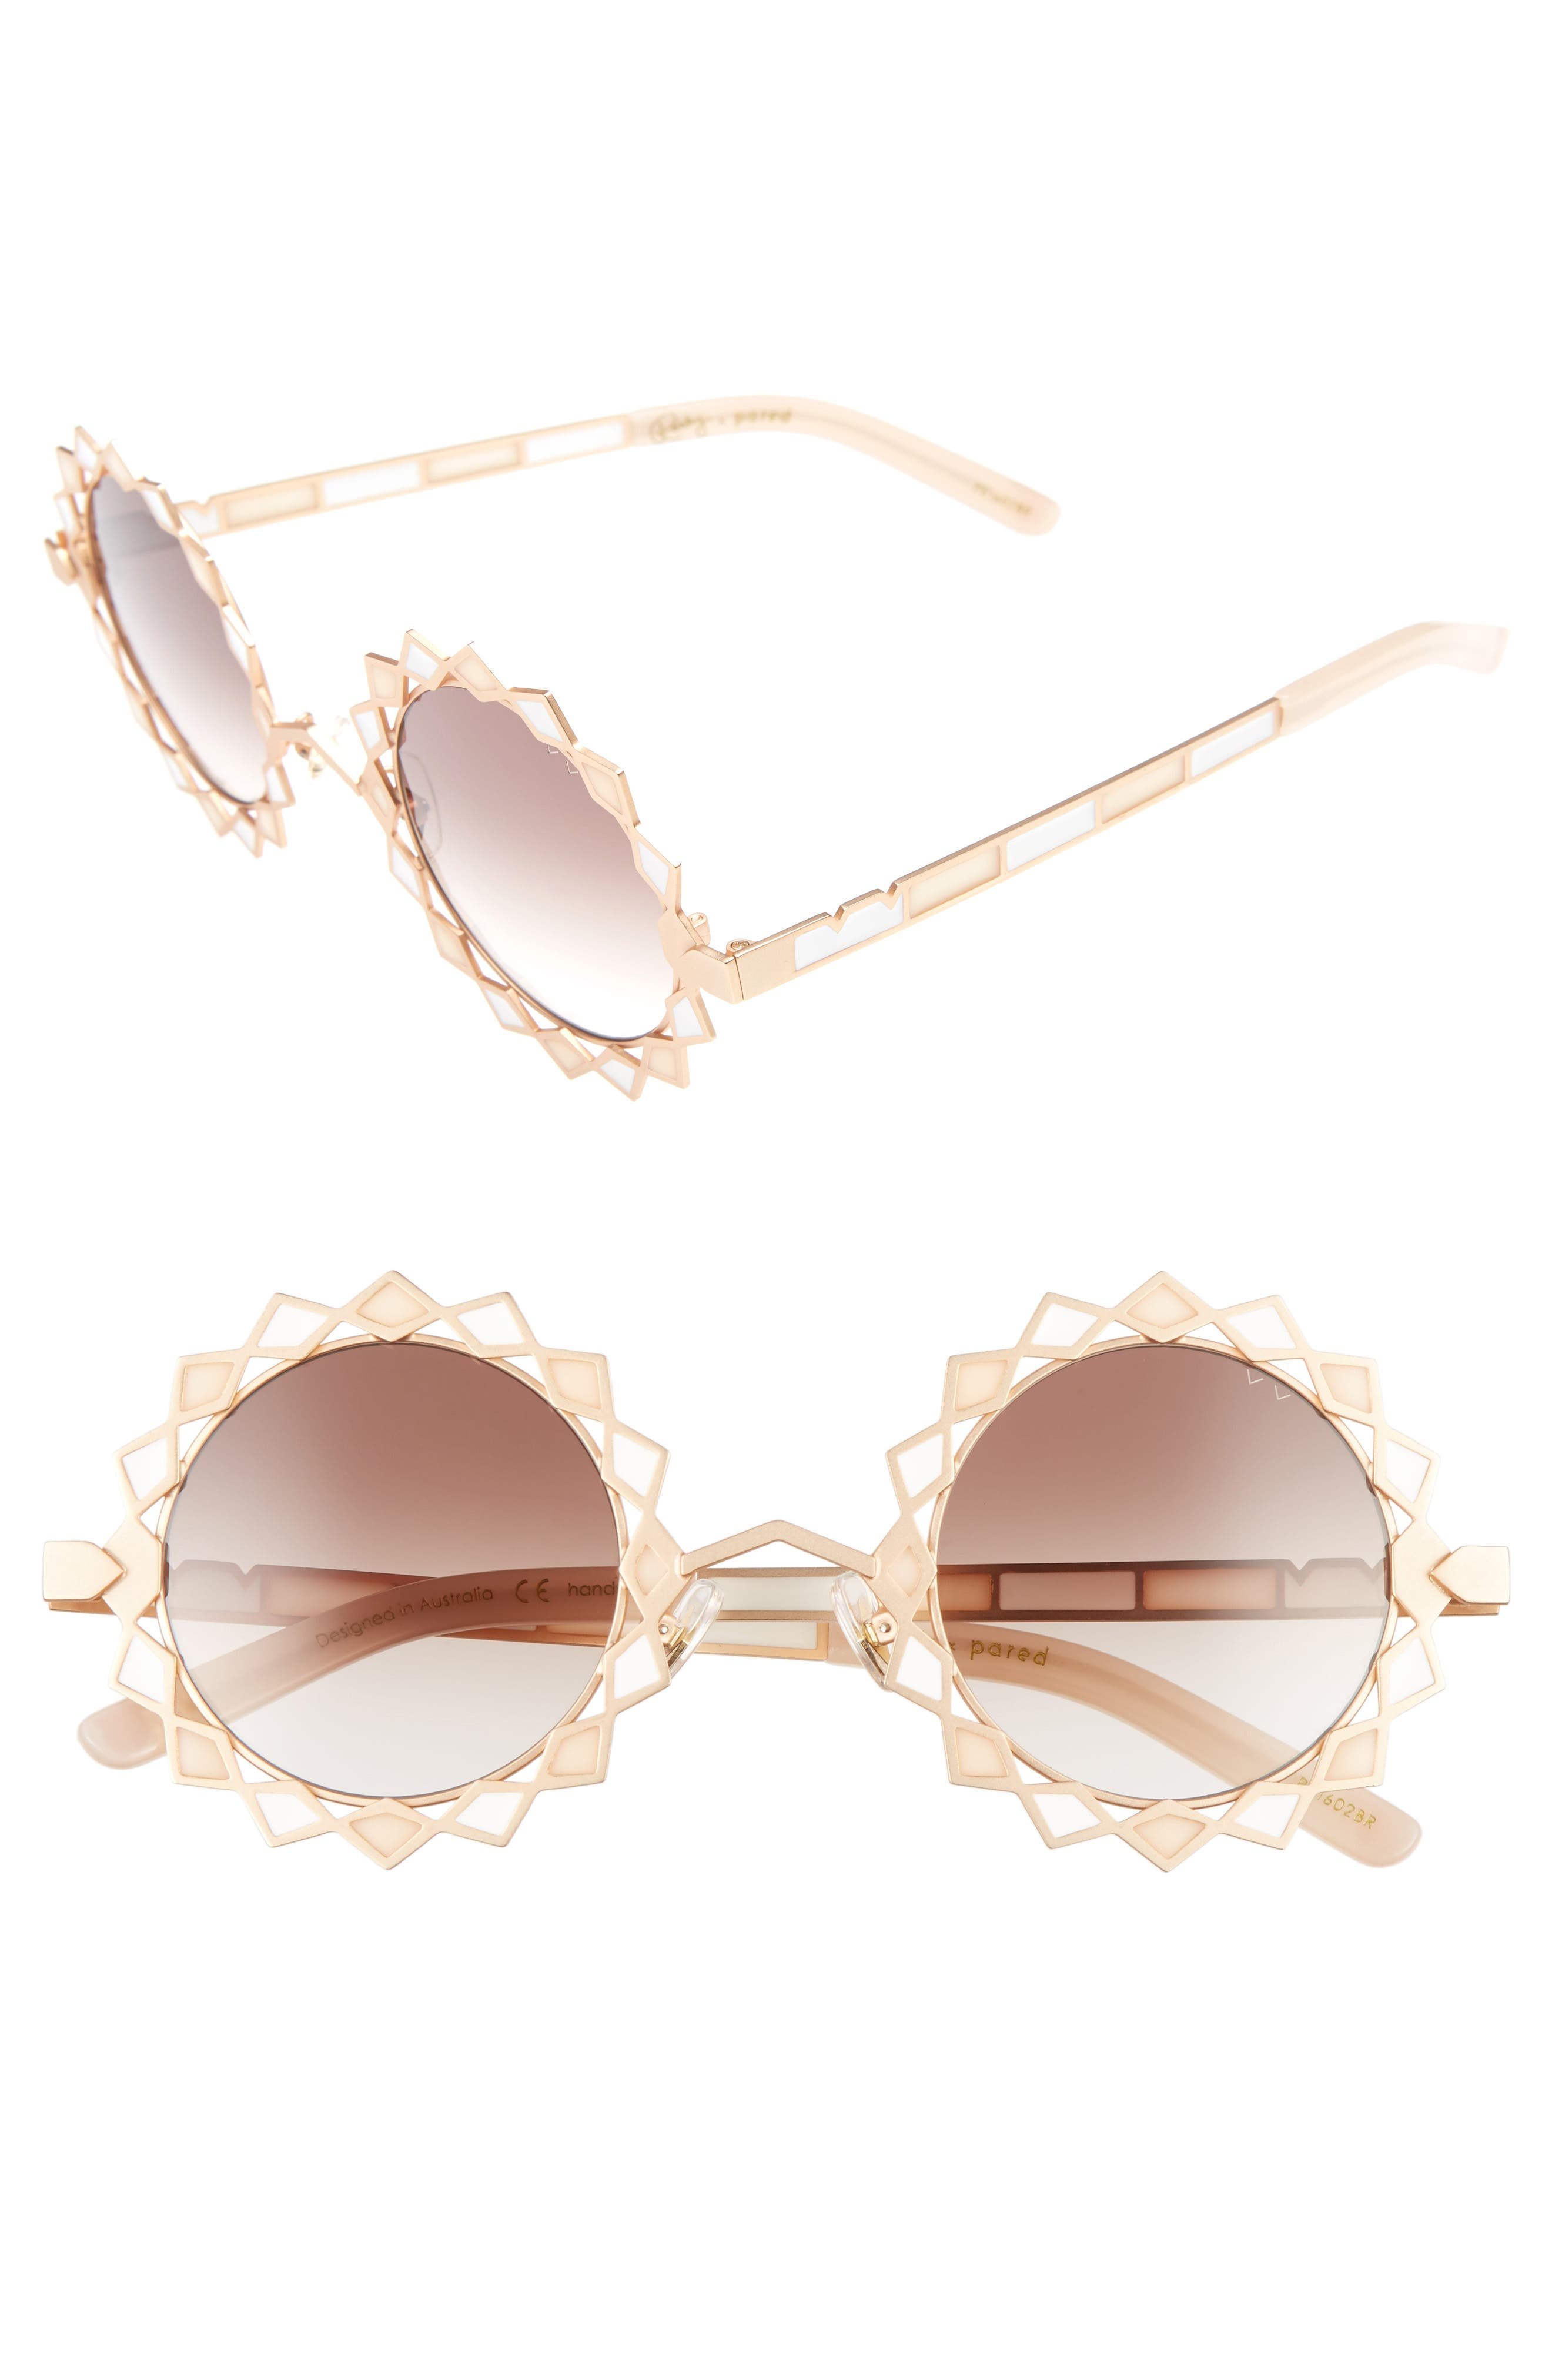 Moon & Stars 44mm Round Retro Sunglasses,                         Main,                         color, Rose Gold/ Blush Brown